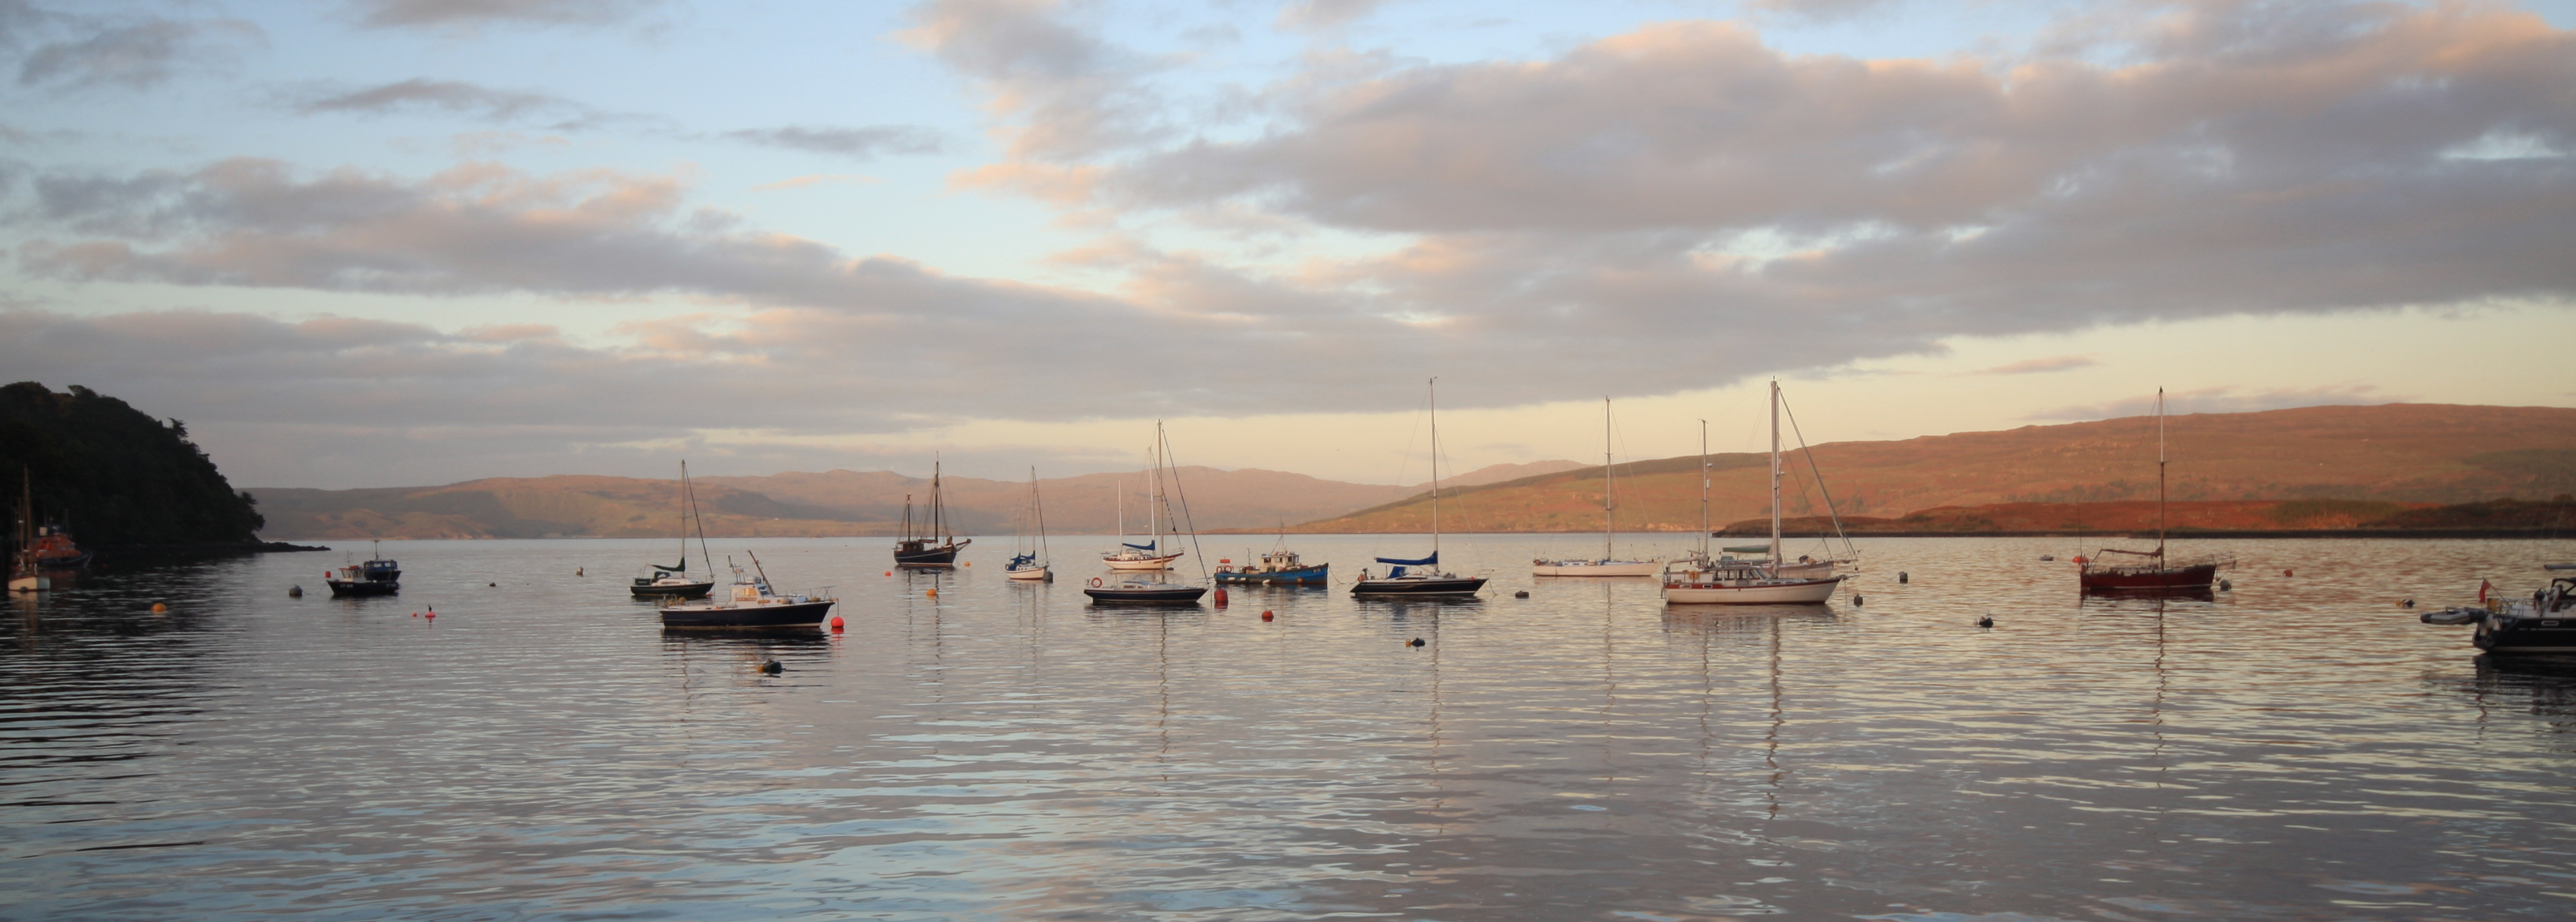 Boat cruises and charters, working from Oban, on the beautiful West coast of Scotland, we offer wildlife cruises that combine bird-watching, whale-watching, island hopping and walking